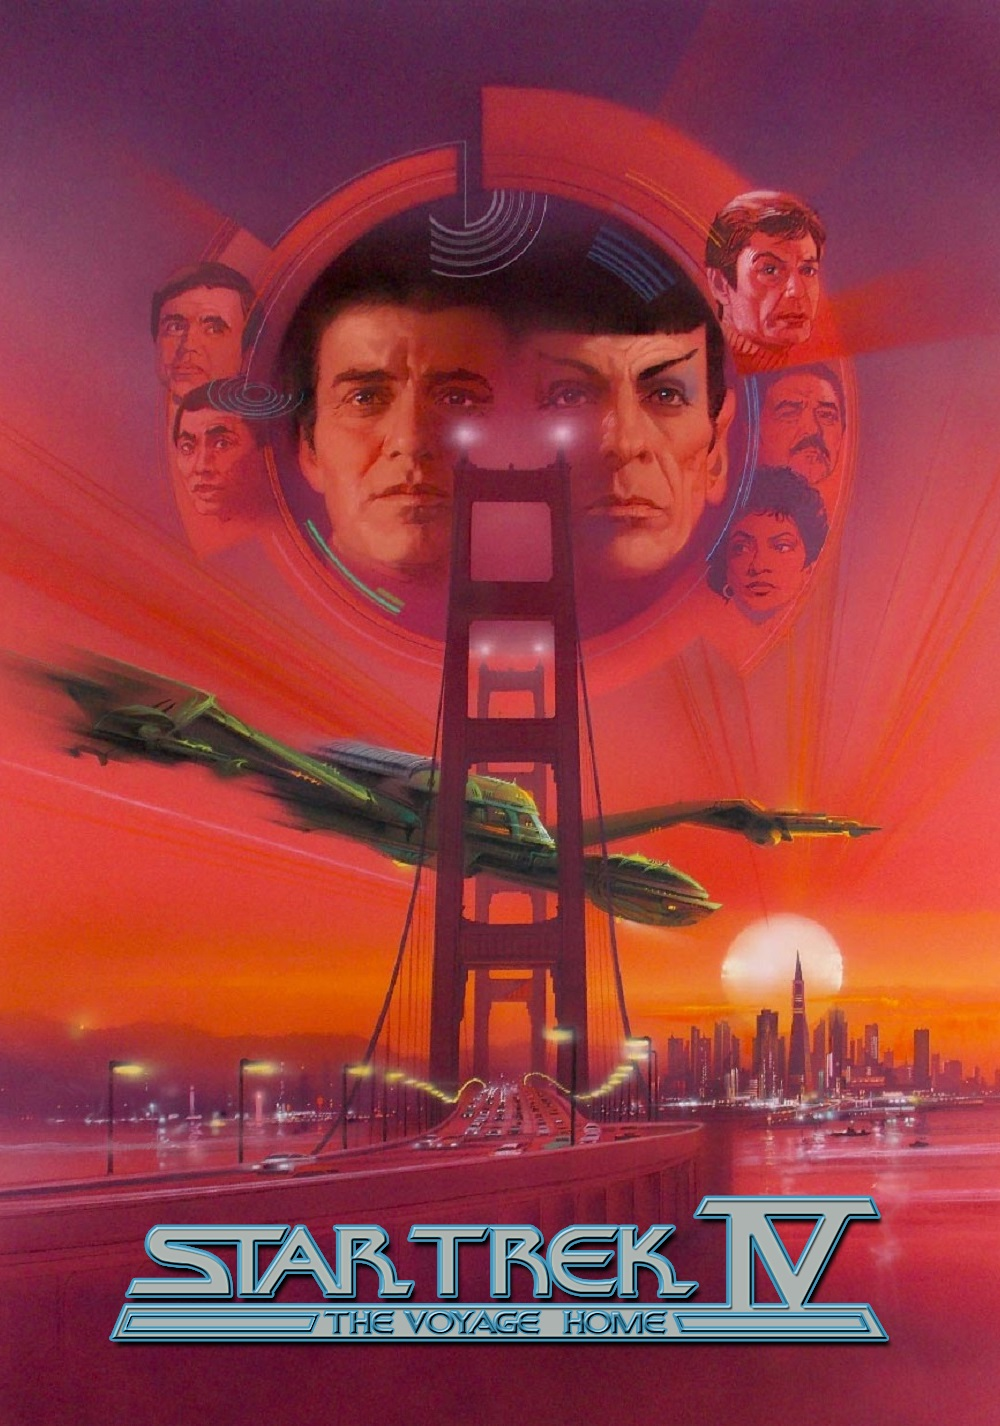 Star Trek IV: The Voyage Home Star_Trek_IV_The_Voyage_Home_poster